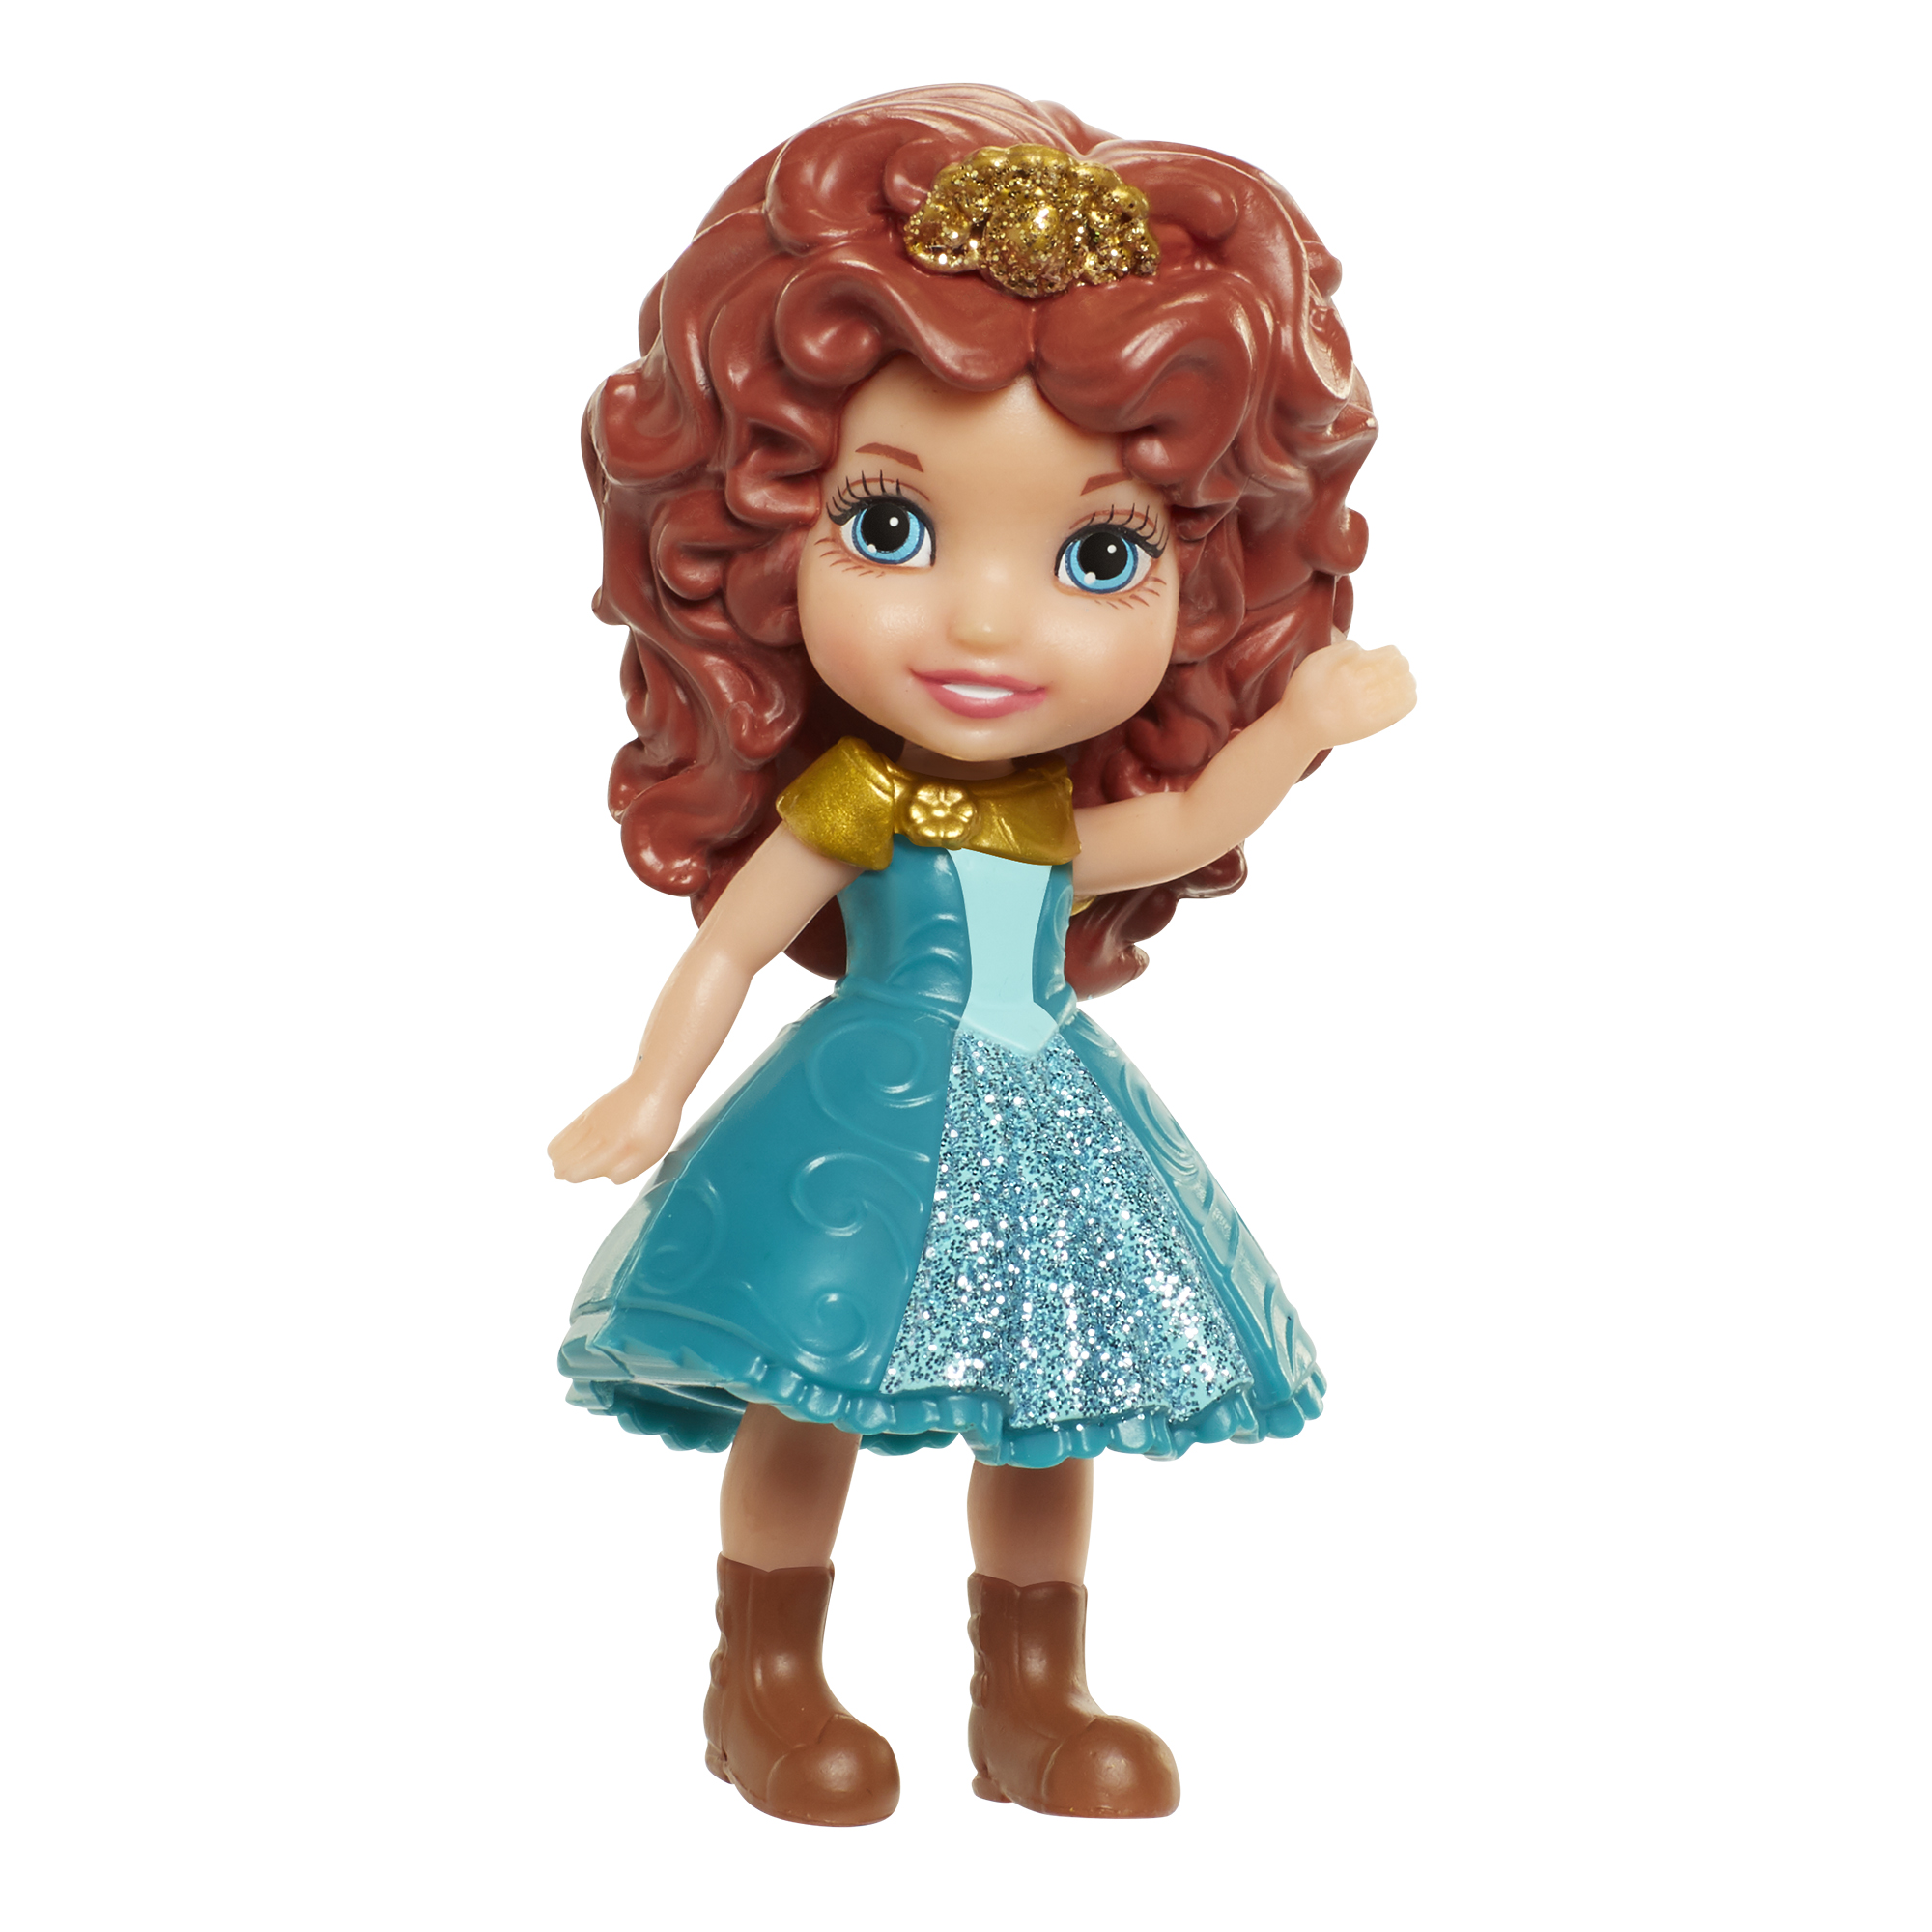 Merida 3 inch Mini Doll Disney Princess